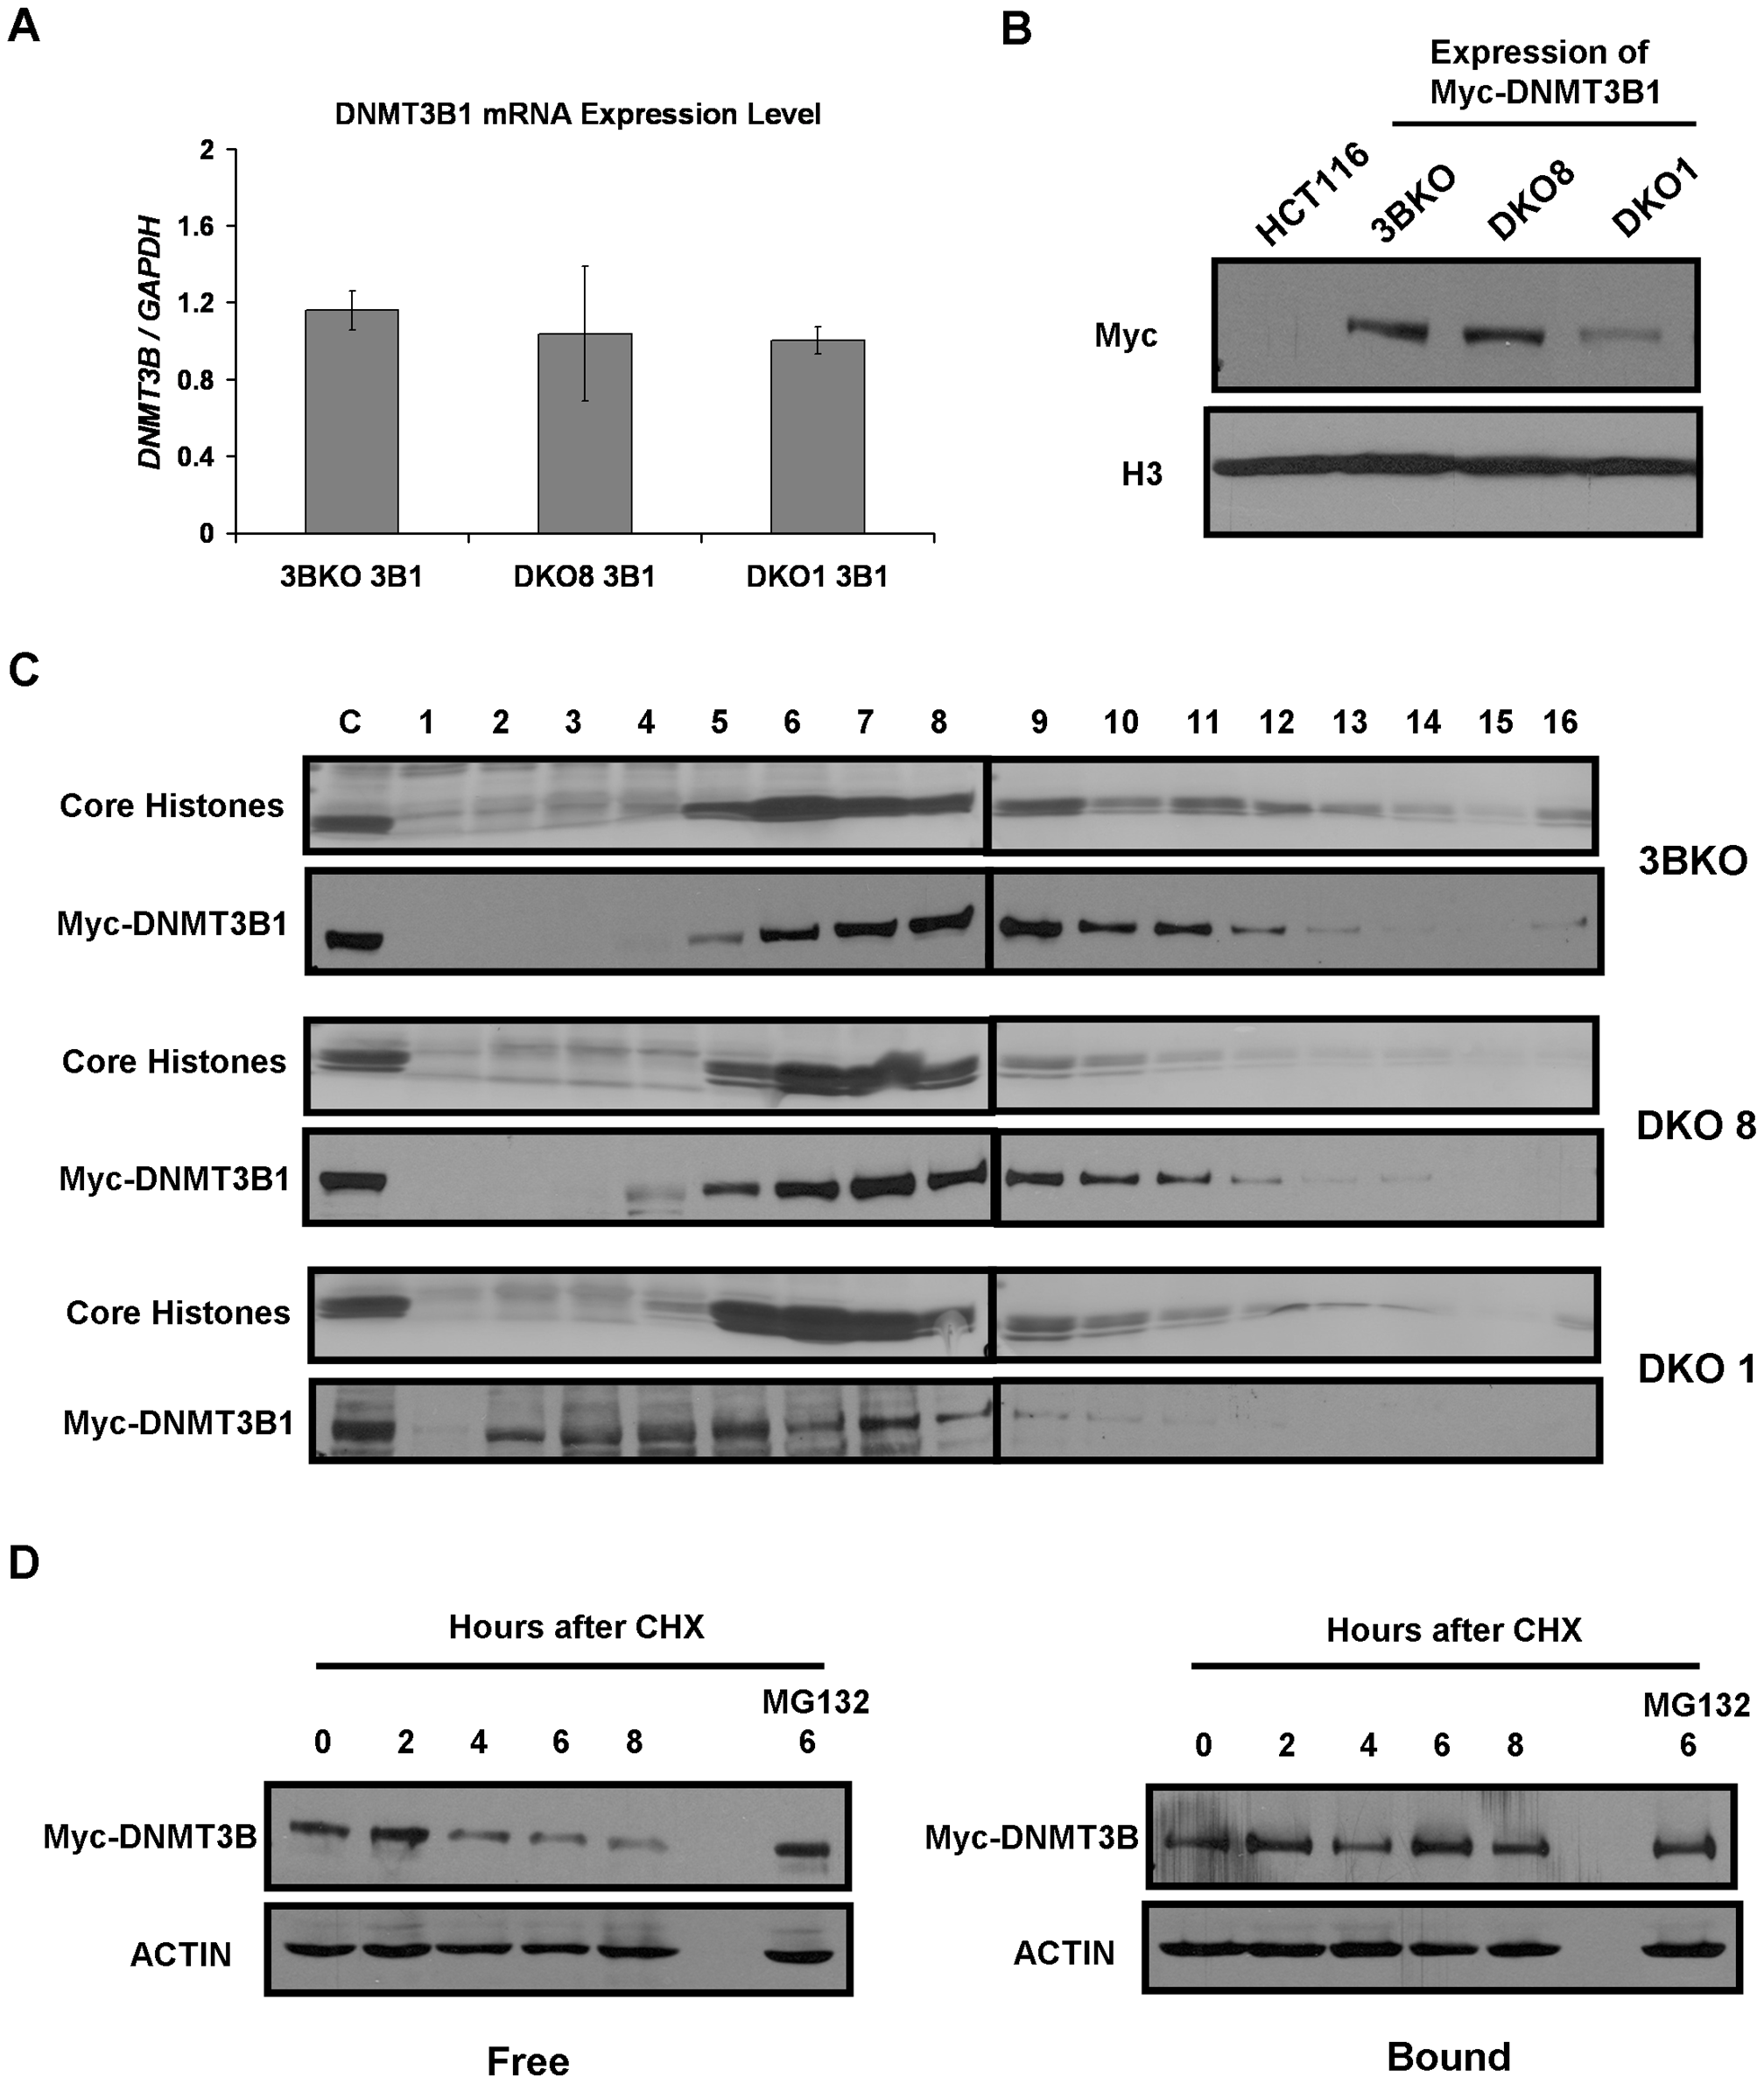 Weak nucleosome binding and selective degradation of unbound DNMT3B in the absence of elevated DNA methylation levels.